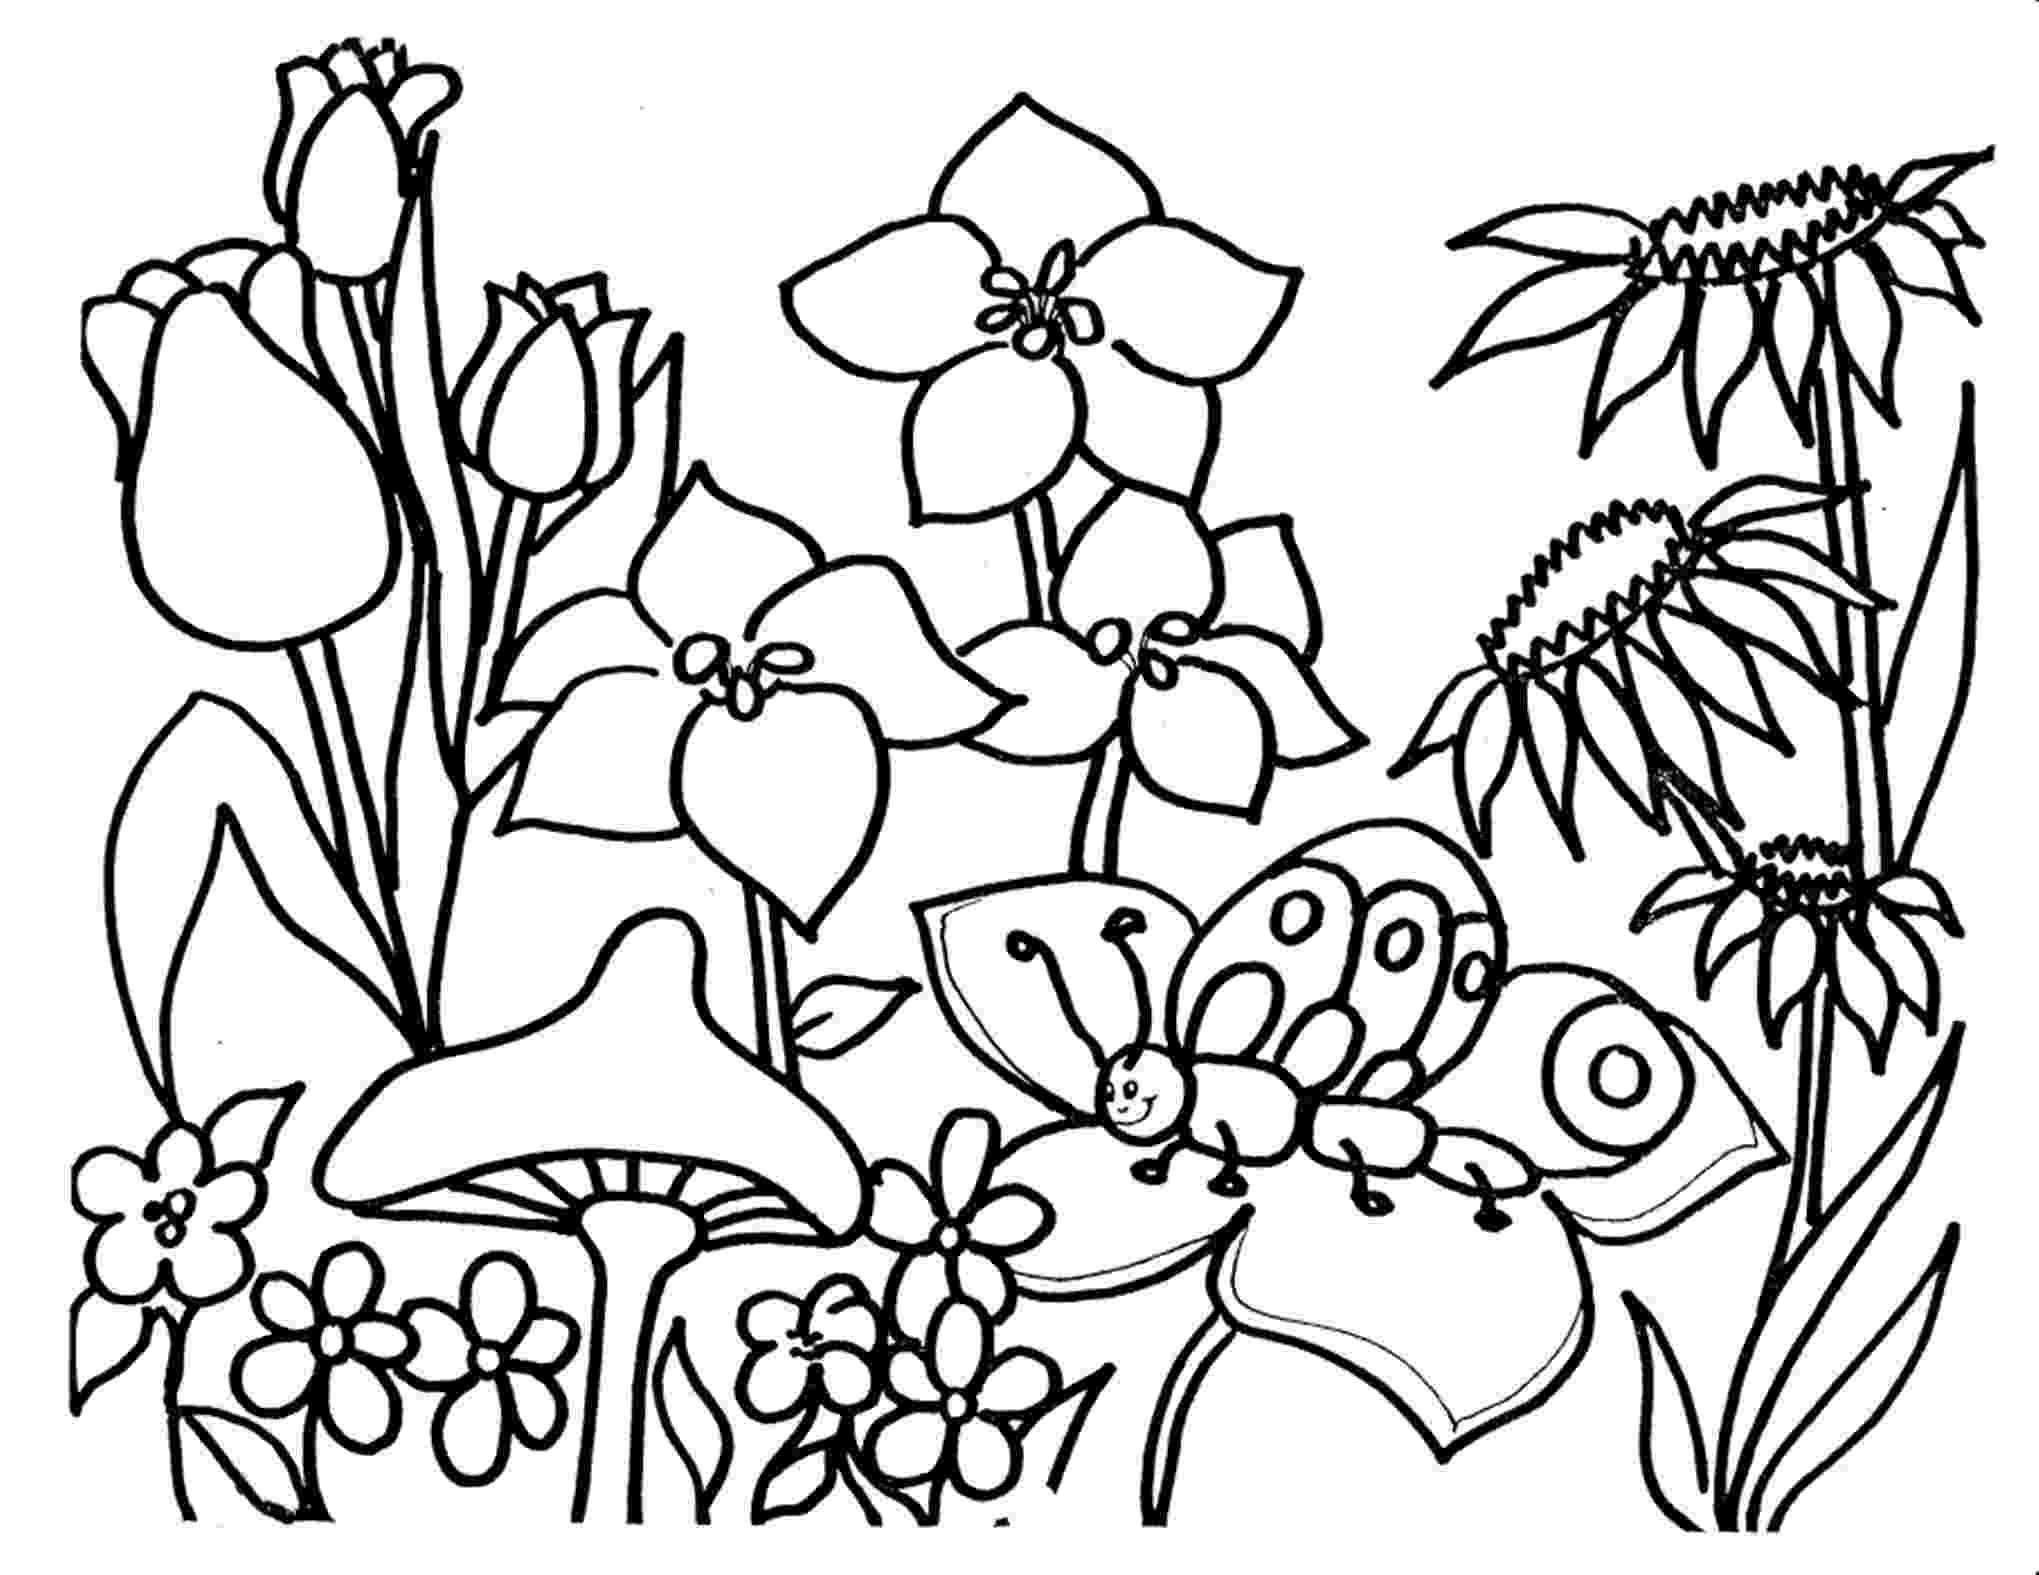 flower colouring pages to print free encouragement flower coloring page printable fox colouring flower pages to print